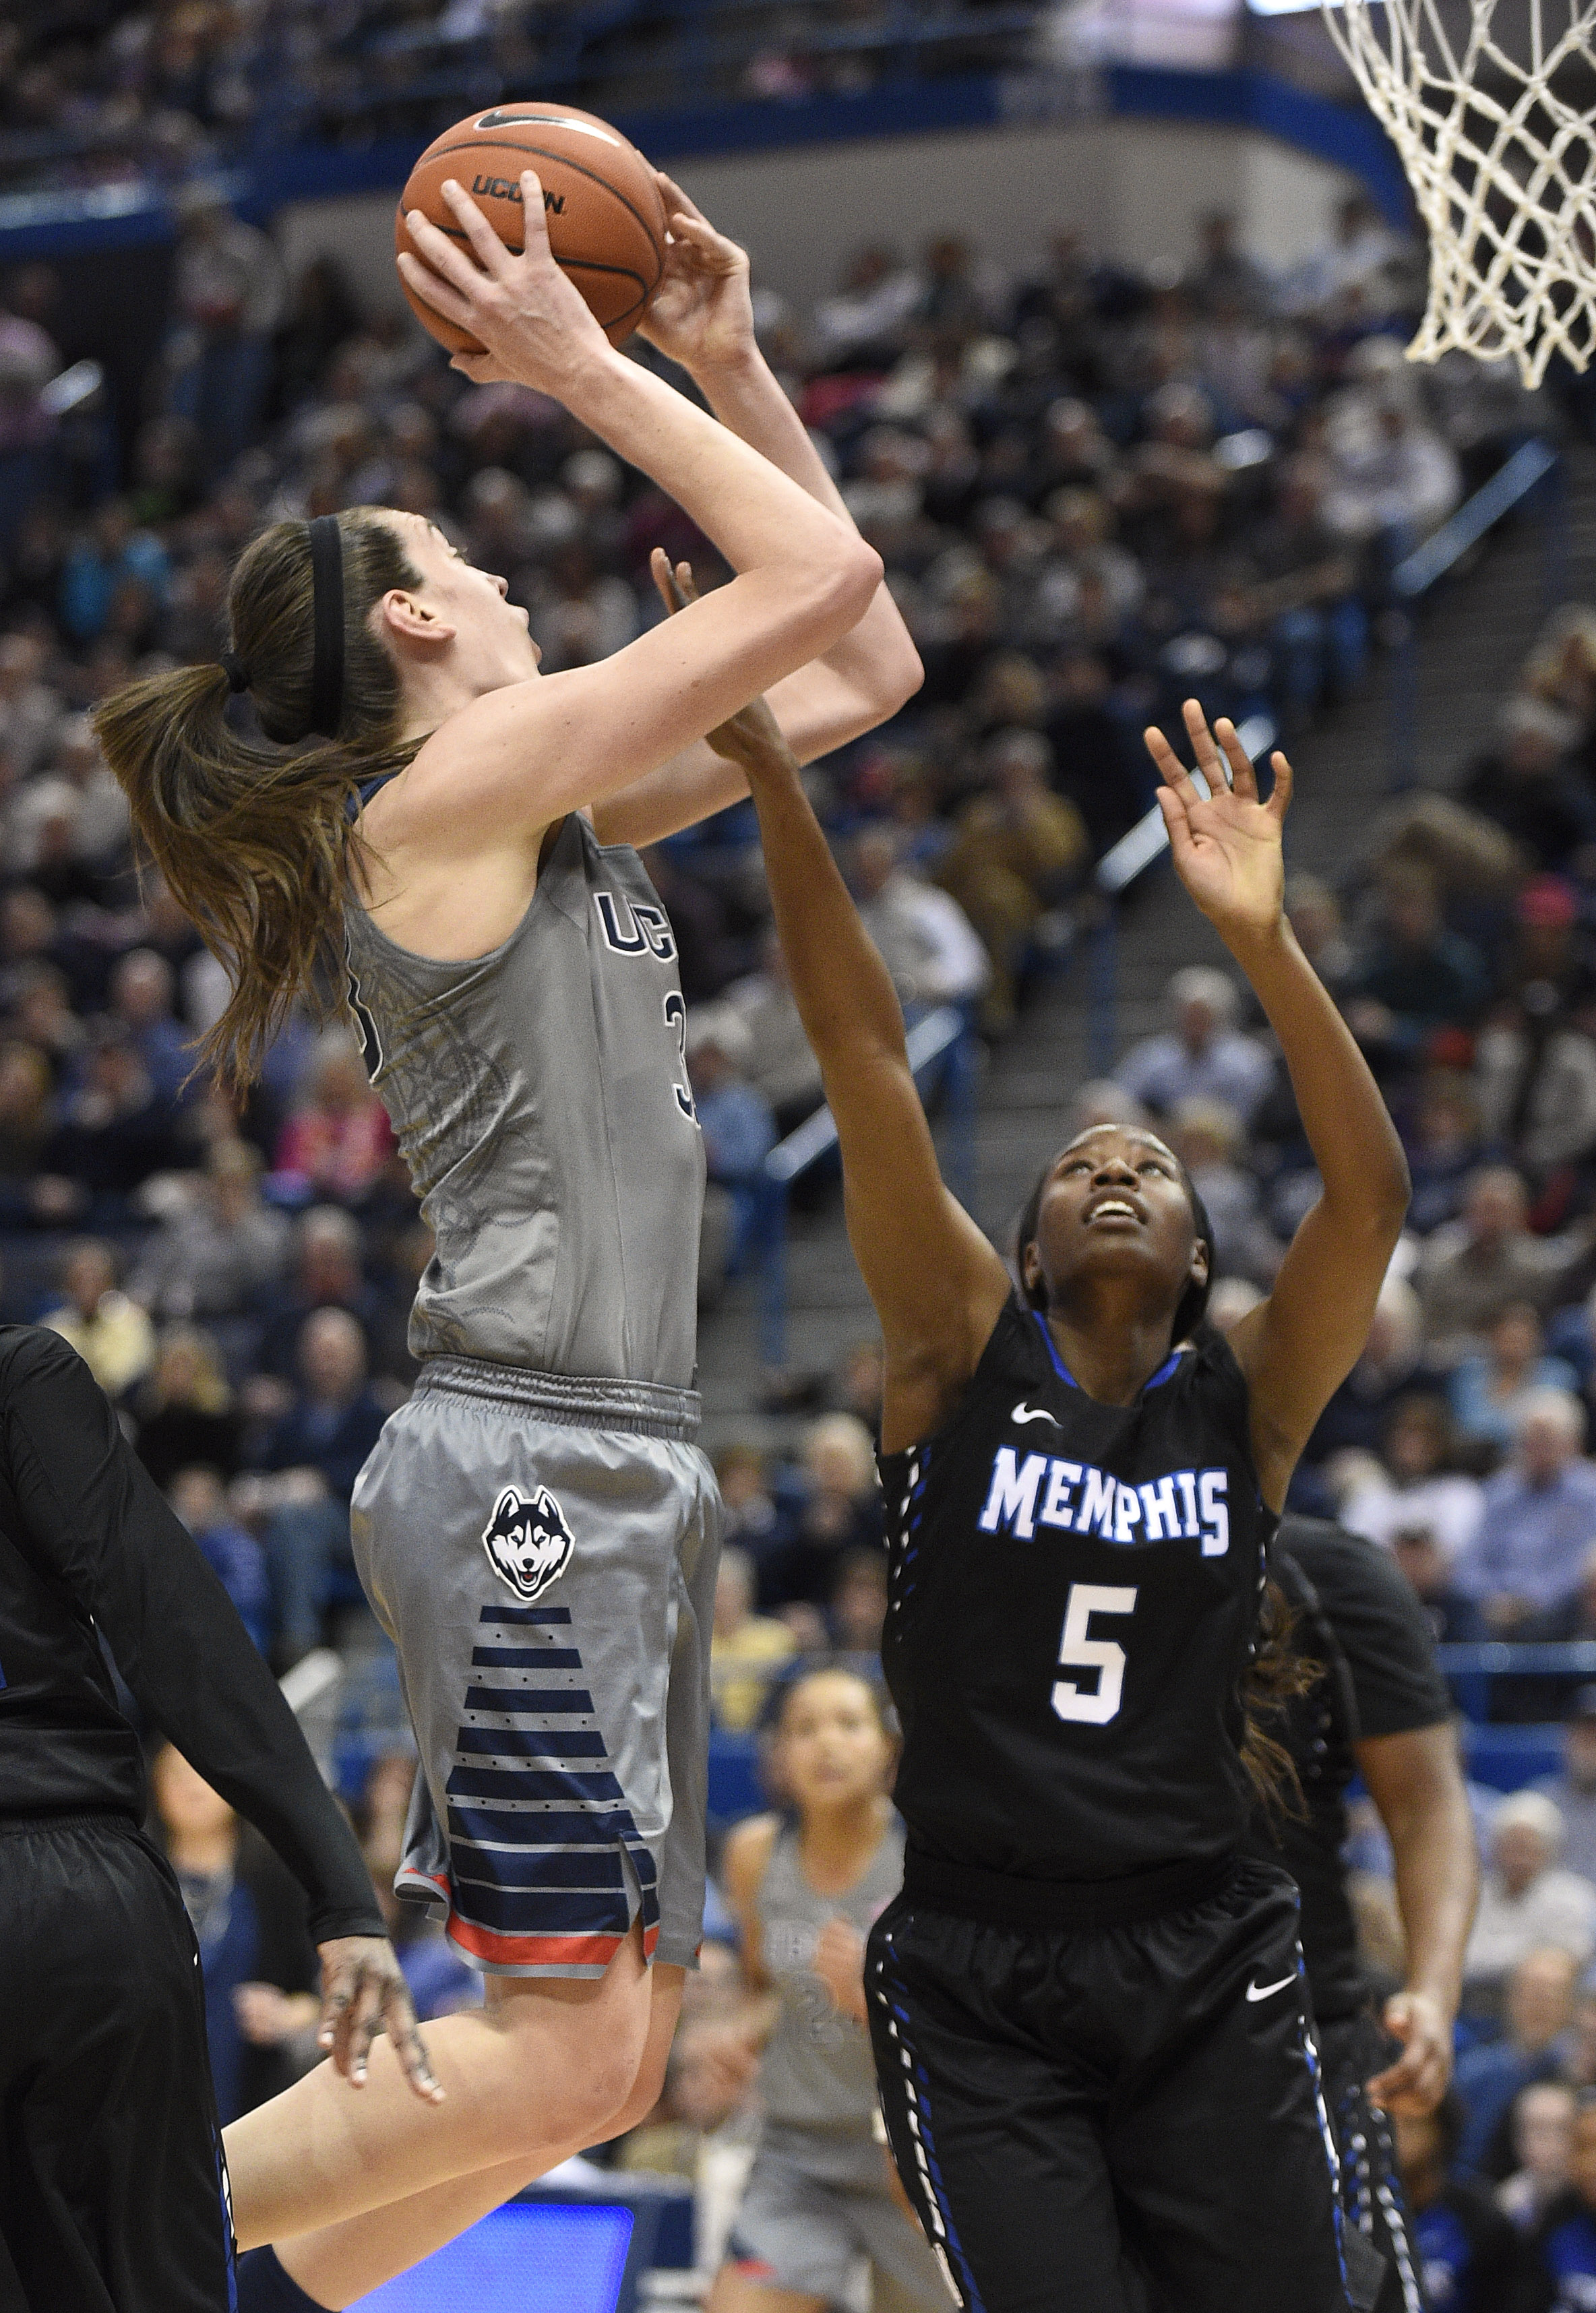 Connecticut's Breanna Stewart (30) shoots over Memphis' Brea Elmore during the first half of an NCAA college basketball game in Hartford, Conn., on Saturday, Jan. 30, 2016. Connecticut won the game 83-40. (AP Photo/Fred Beckham)